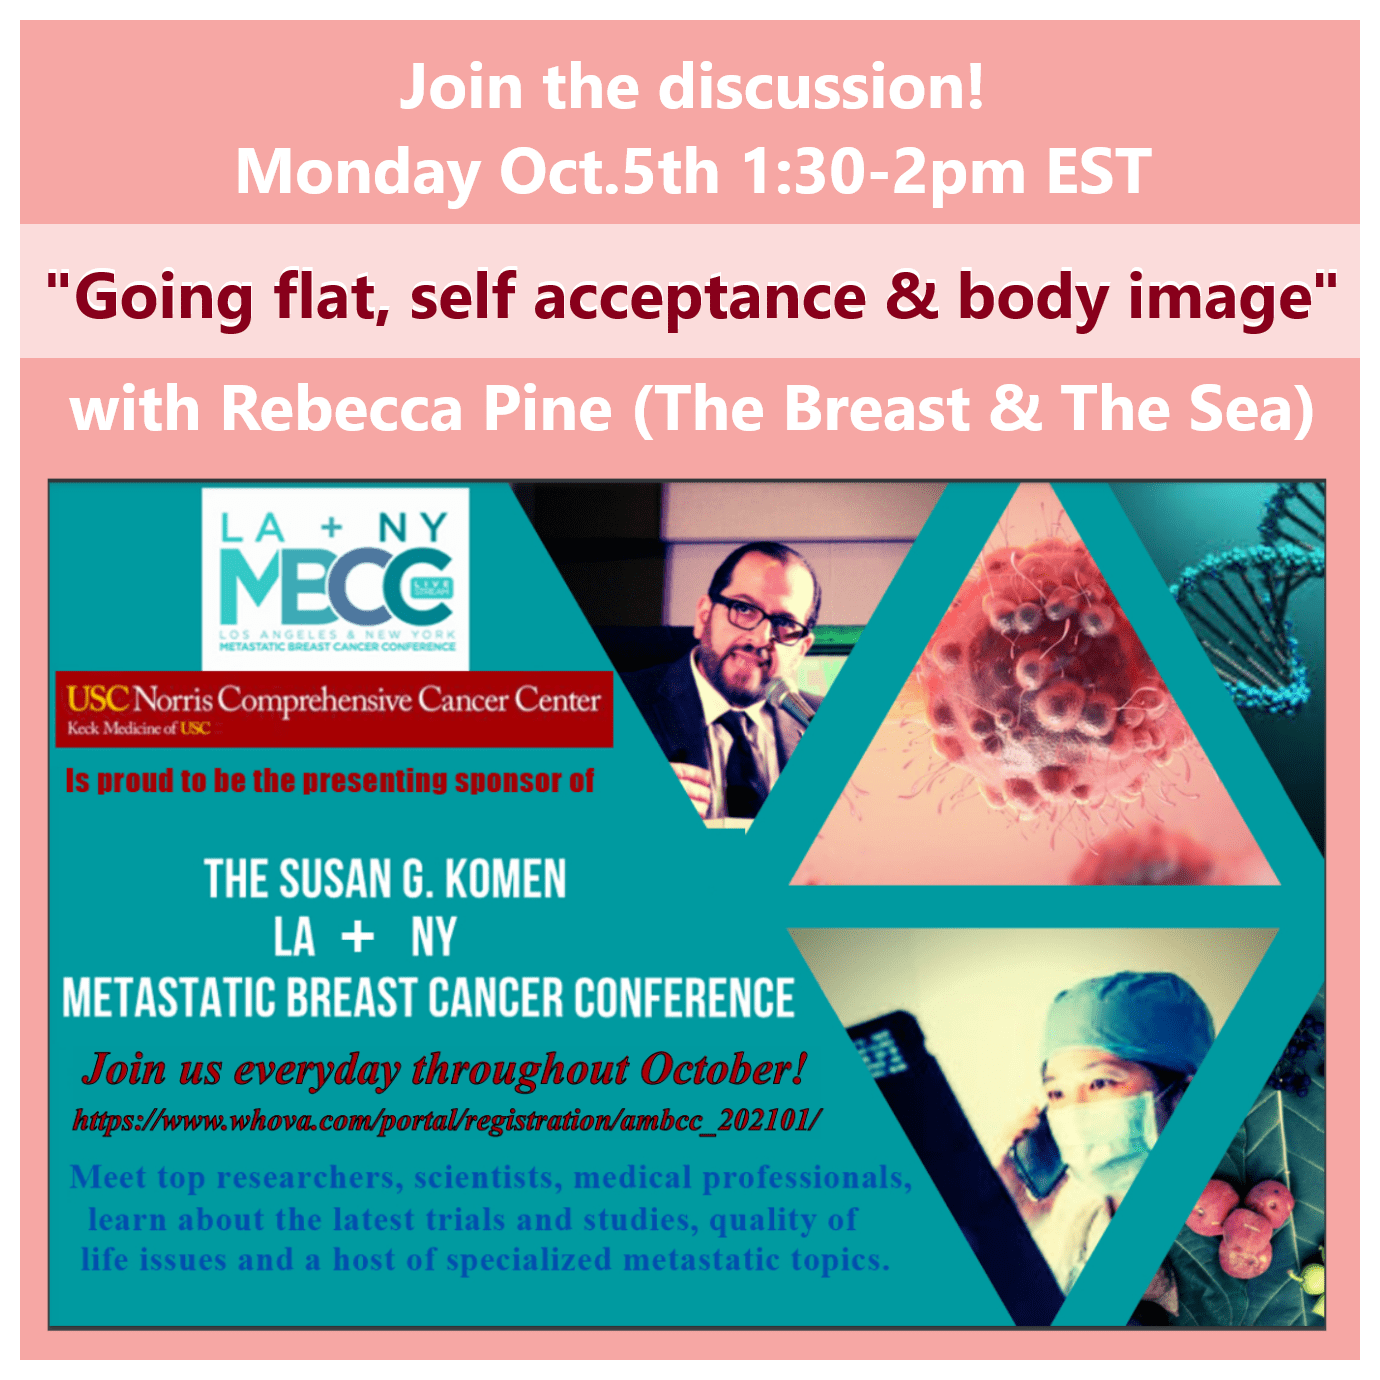 Rebecca Pine MBCC Komen webinar going flat after mastectomy body image